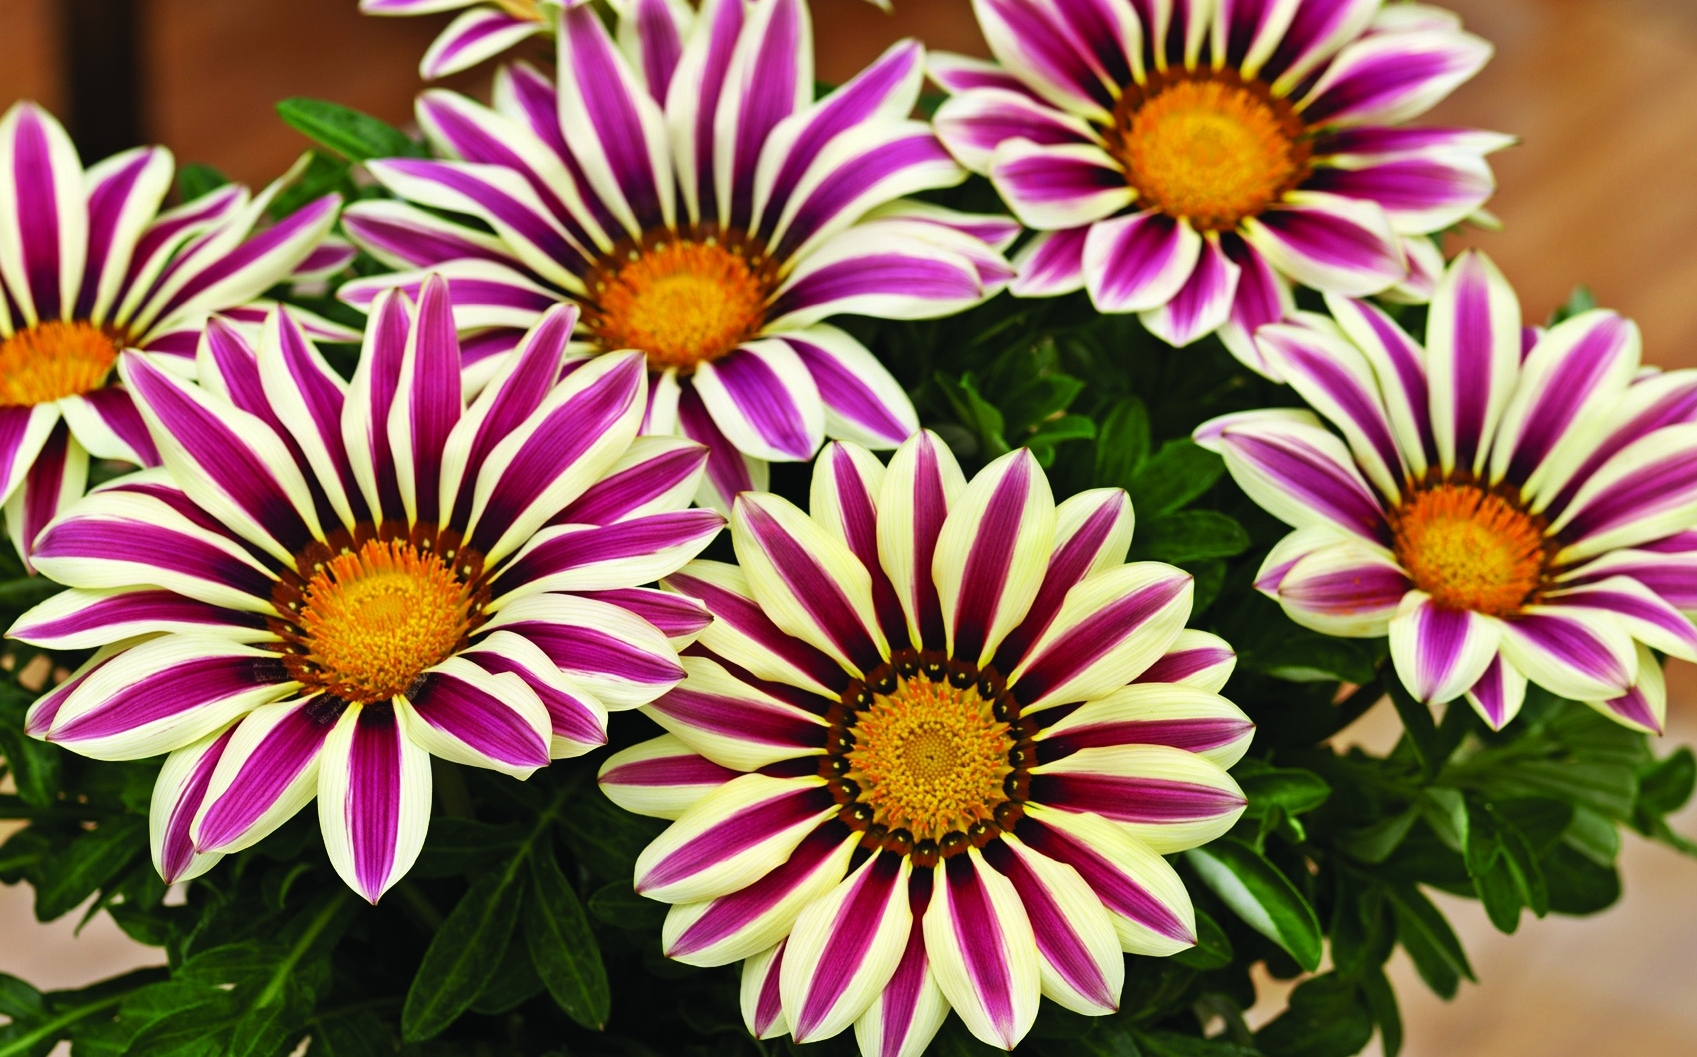 Gazania Big Kiss 'White Flame'